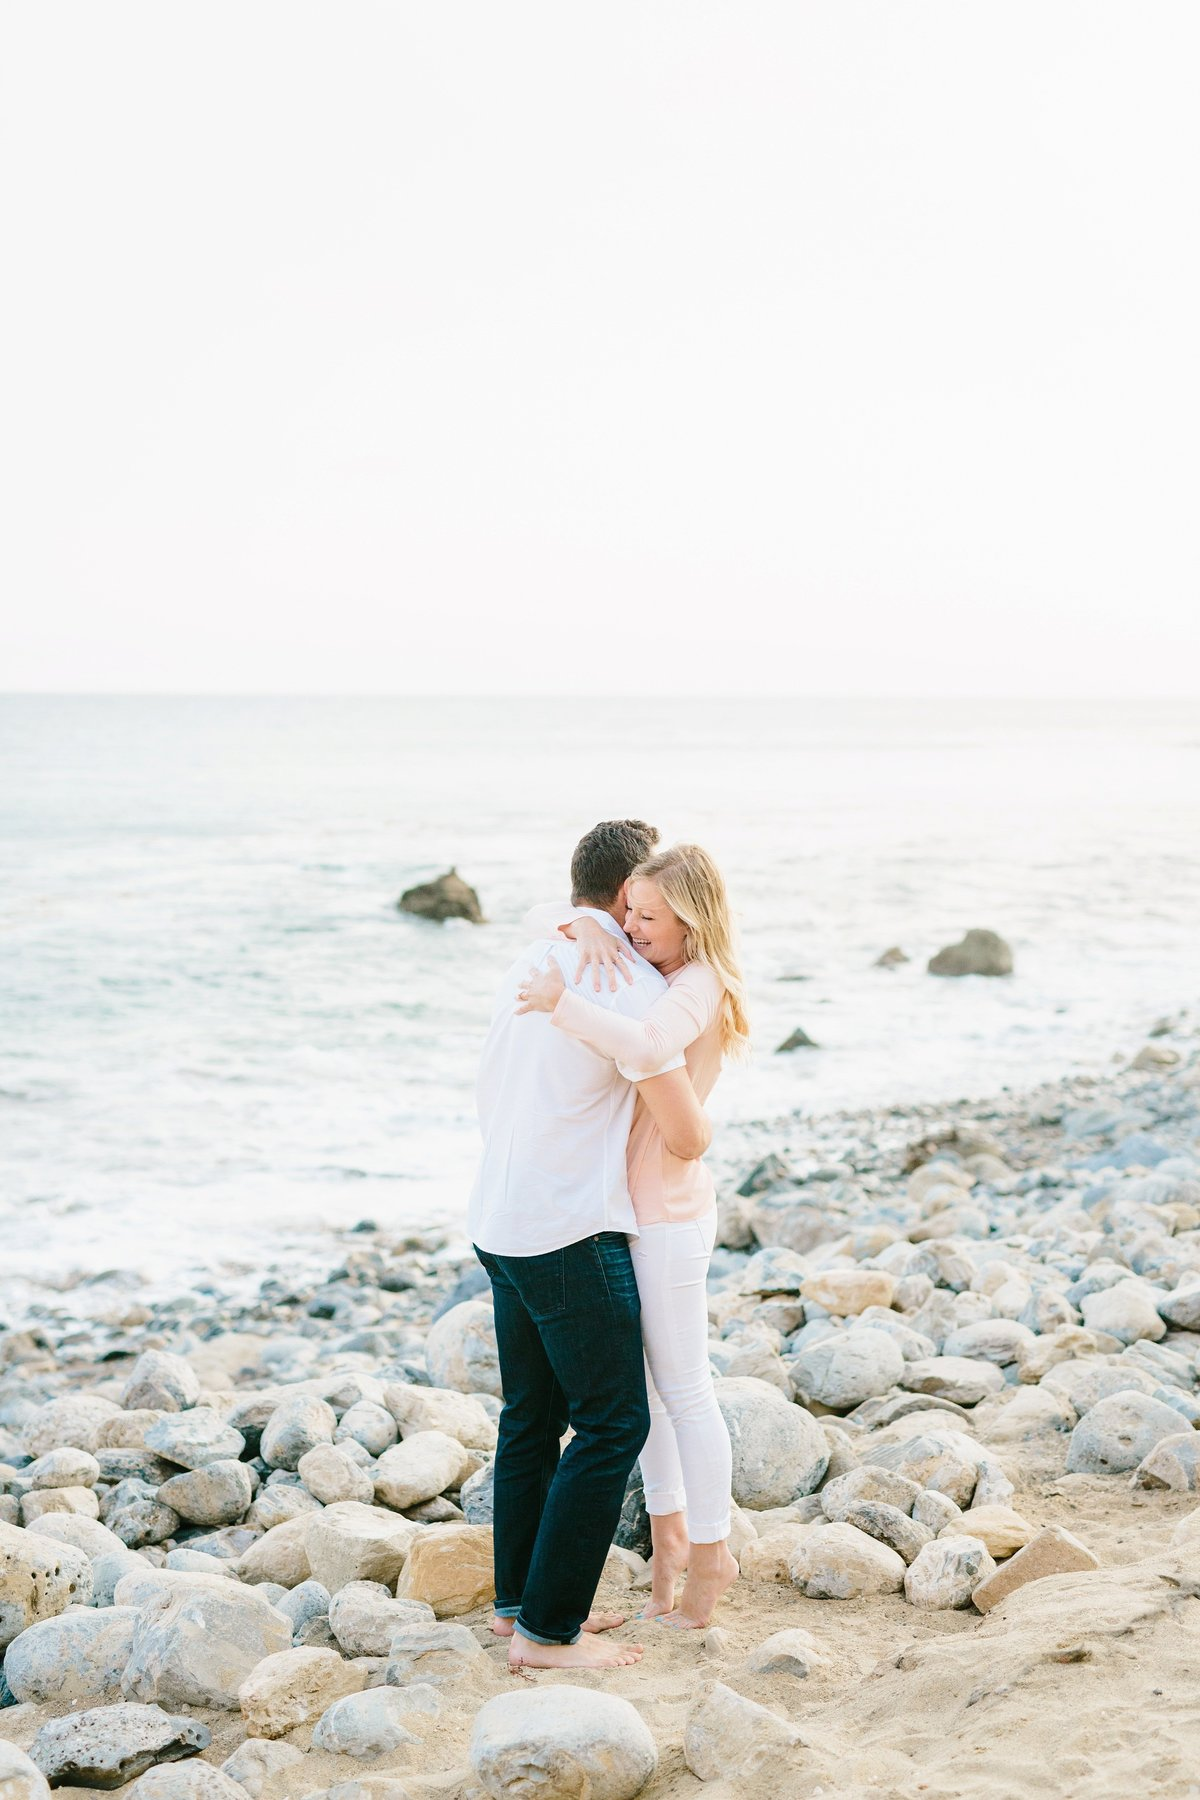 Best California Engagement Photographer_Jodee Debes Photography_035